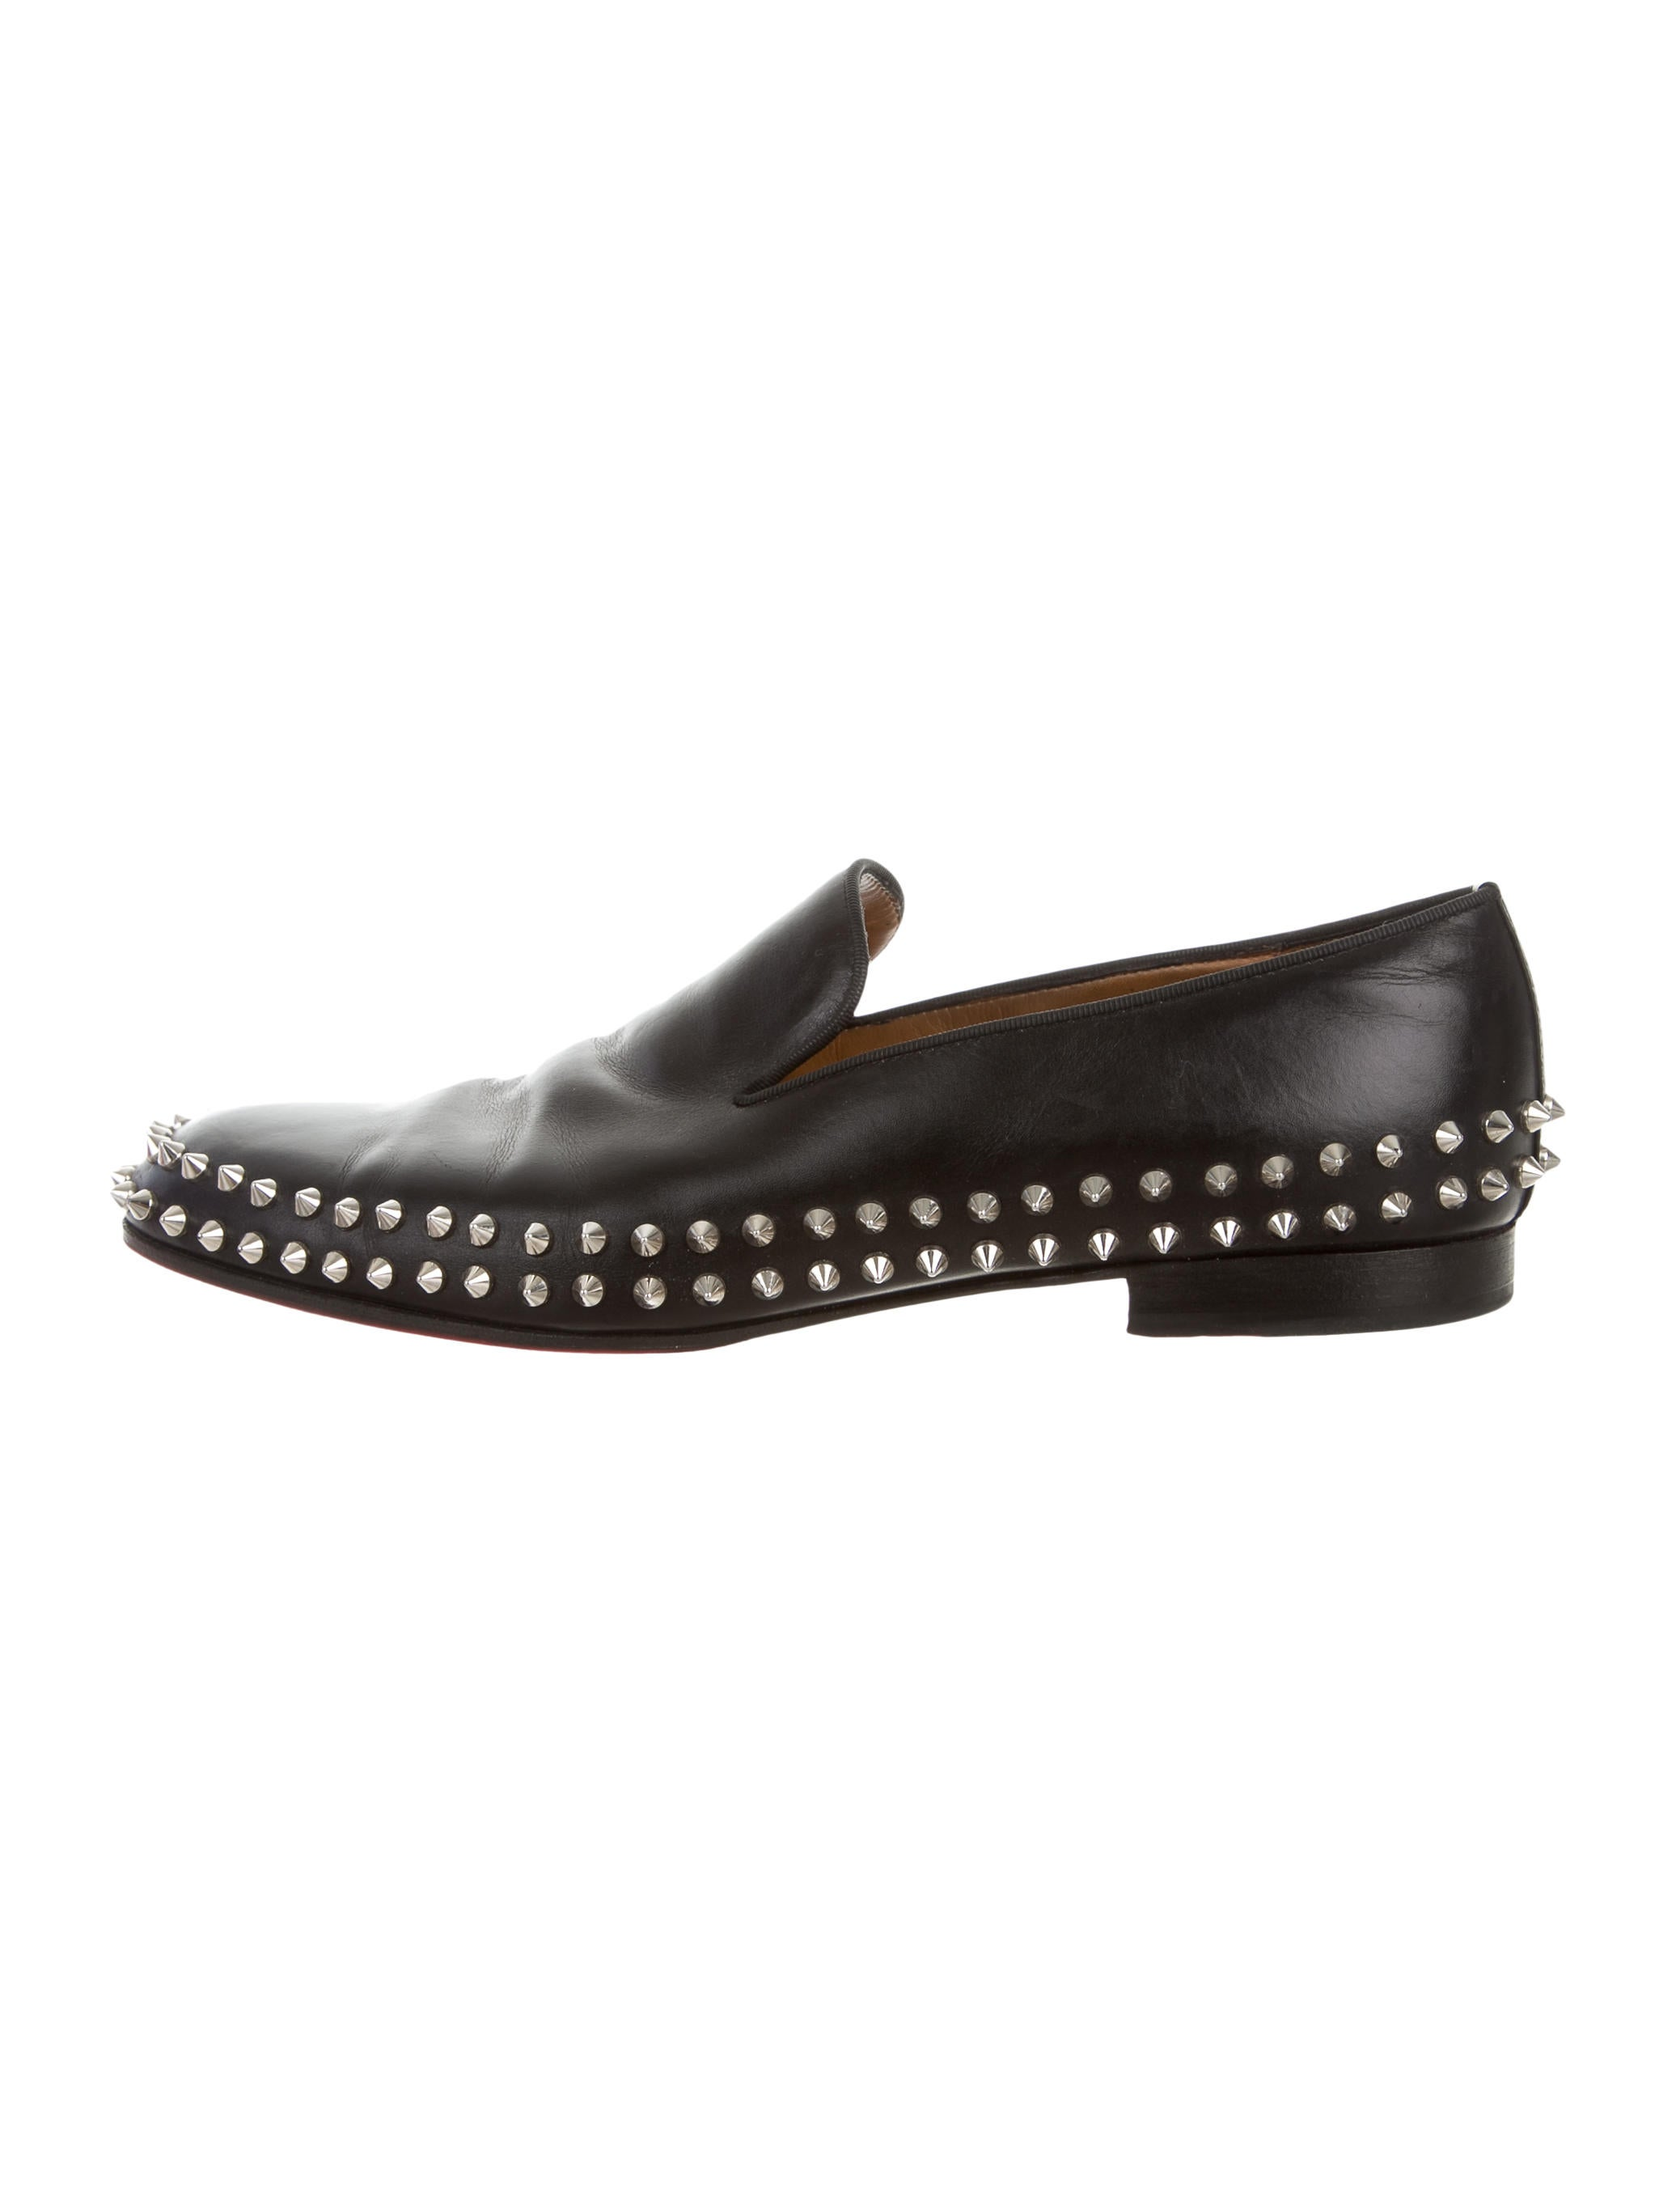 a52550bf738d Christian Louboutin Dandelion Spikes Flats - Shoes - CHT65936